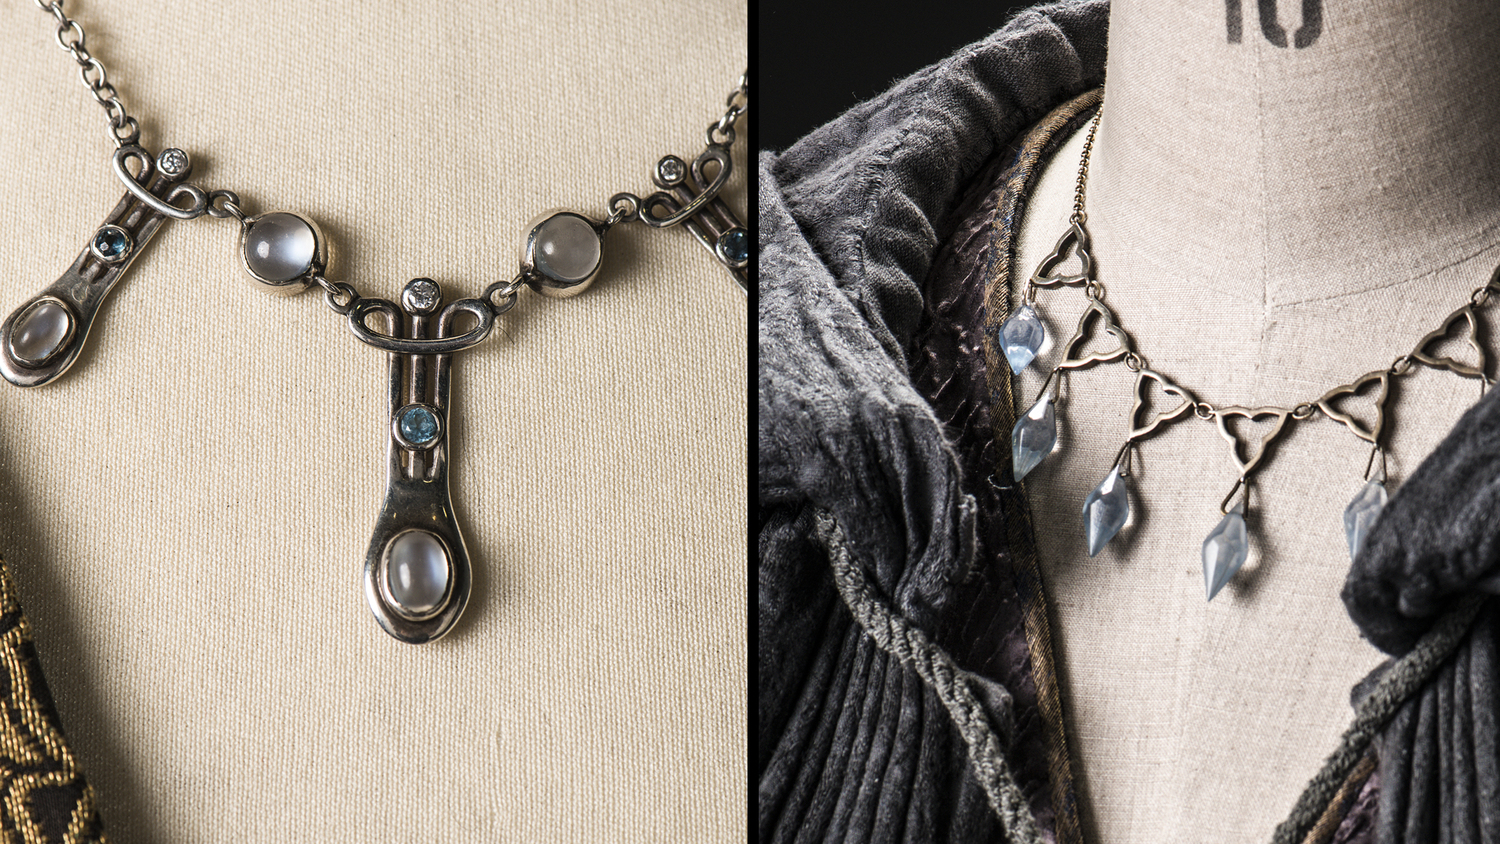 Margaery's necklace is on the left; Sansa's is on the right.